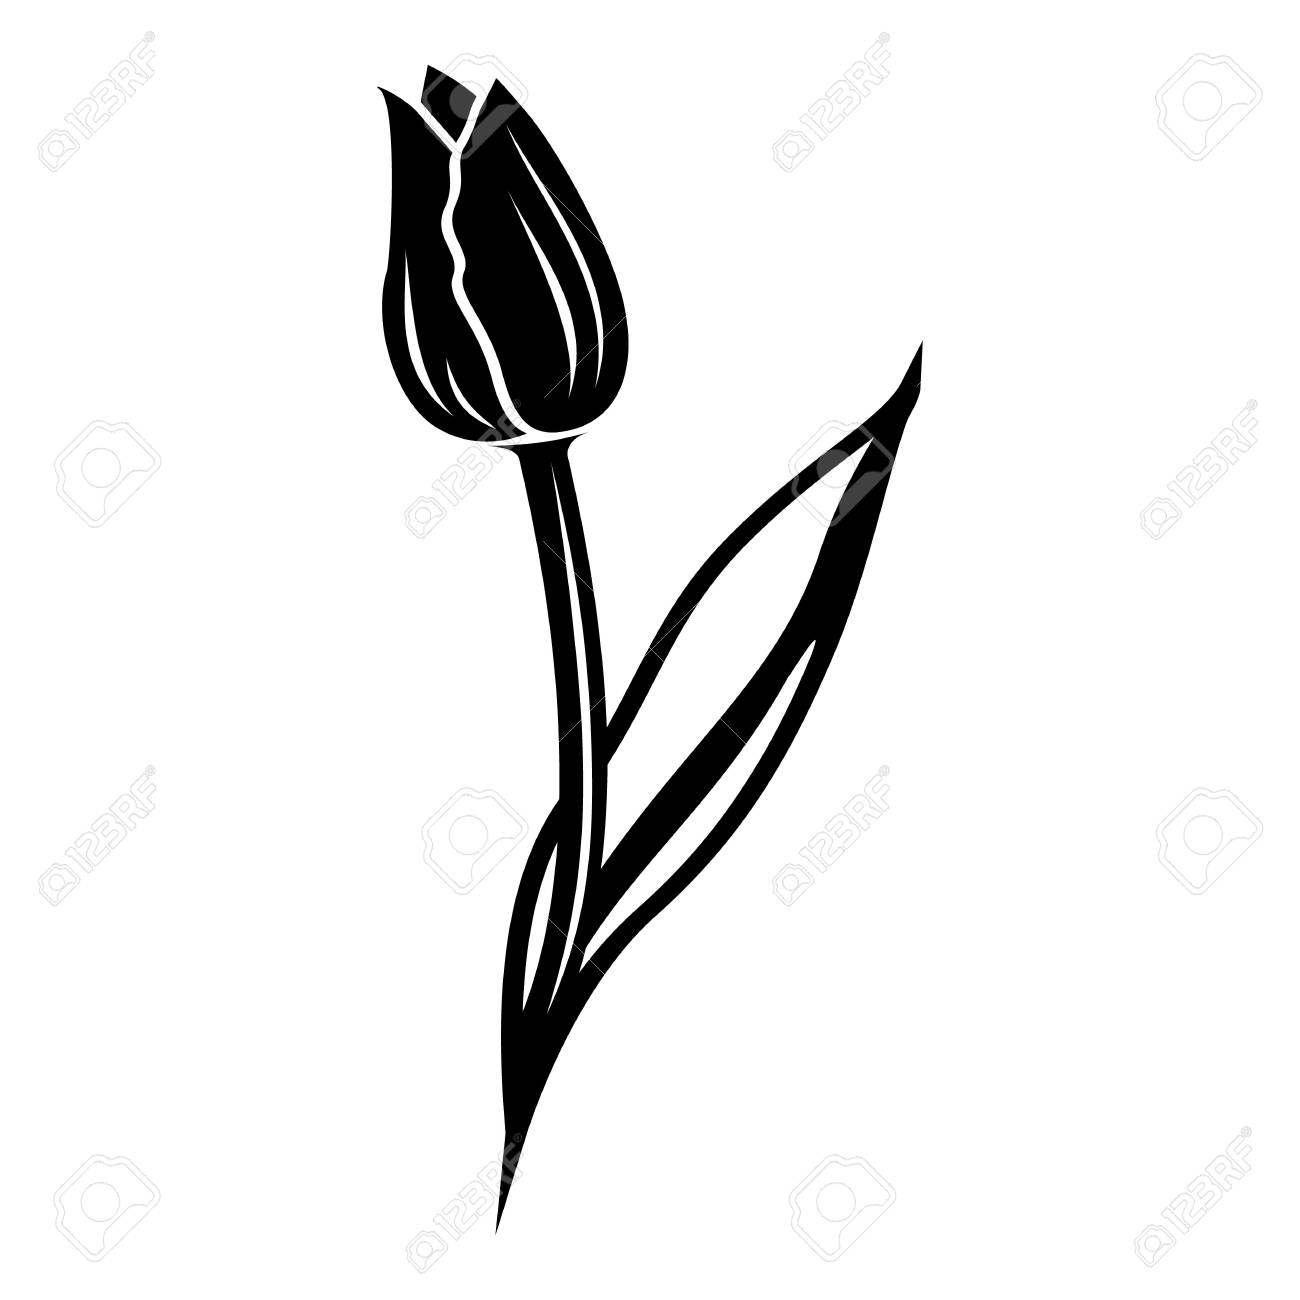 tulip icon simple illustration of tulip vector icon for web royalty free cliparts vectors and stock illustration image 93049193 tulip icon simple illustration of tulip vector icon for web